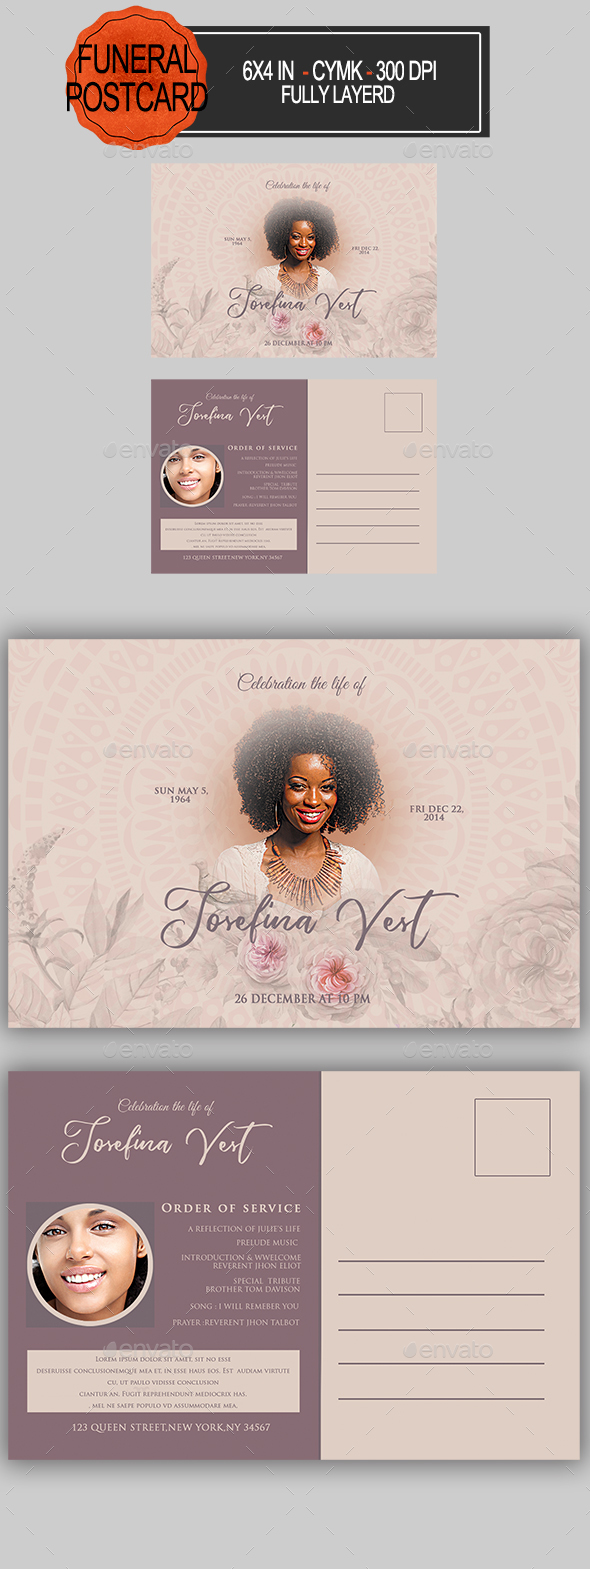 GraphicRiver Funeral Program Postcard 21201383